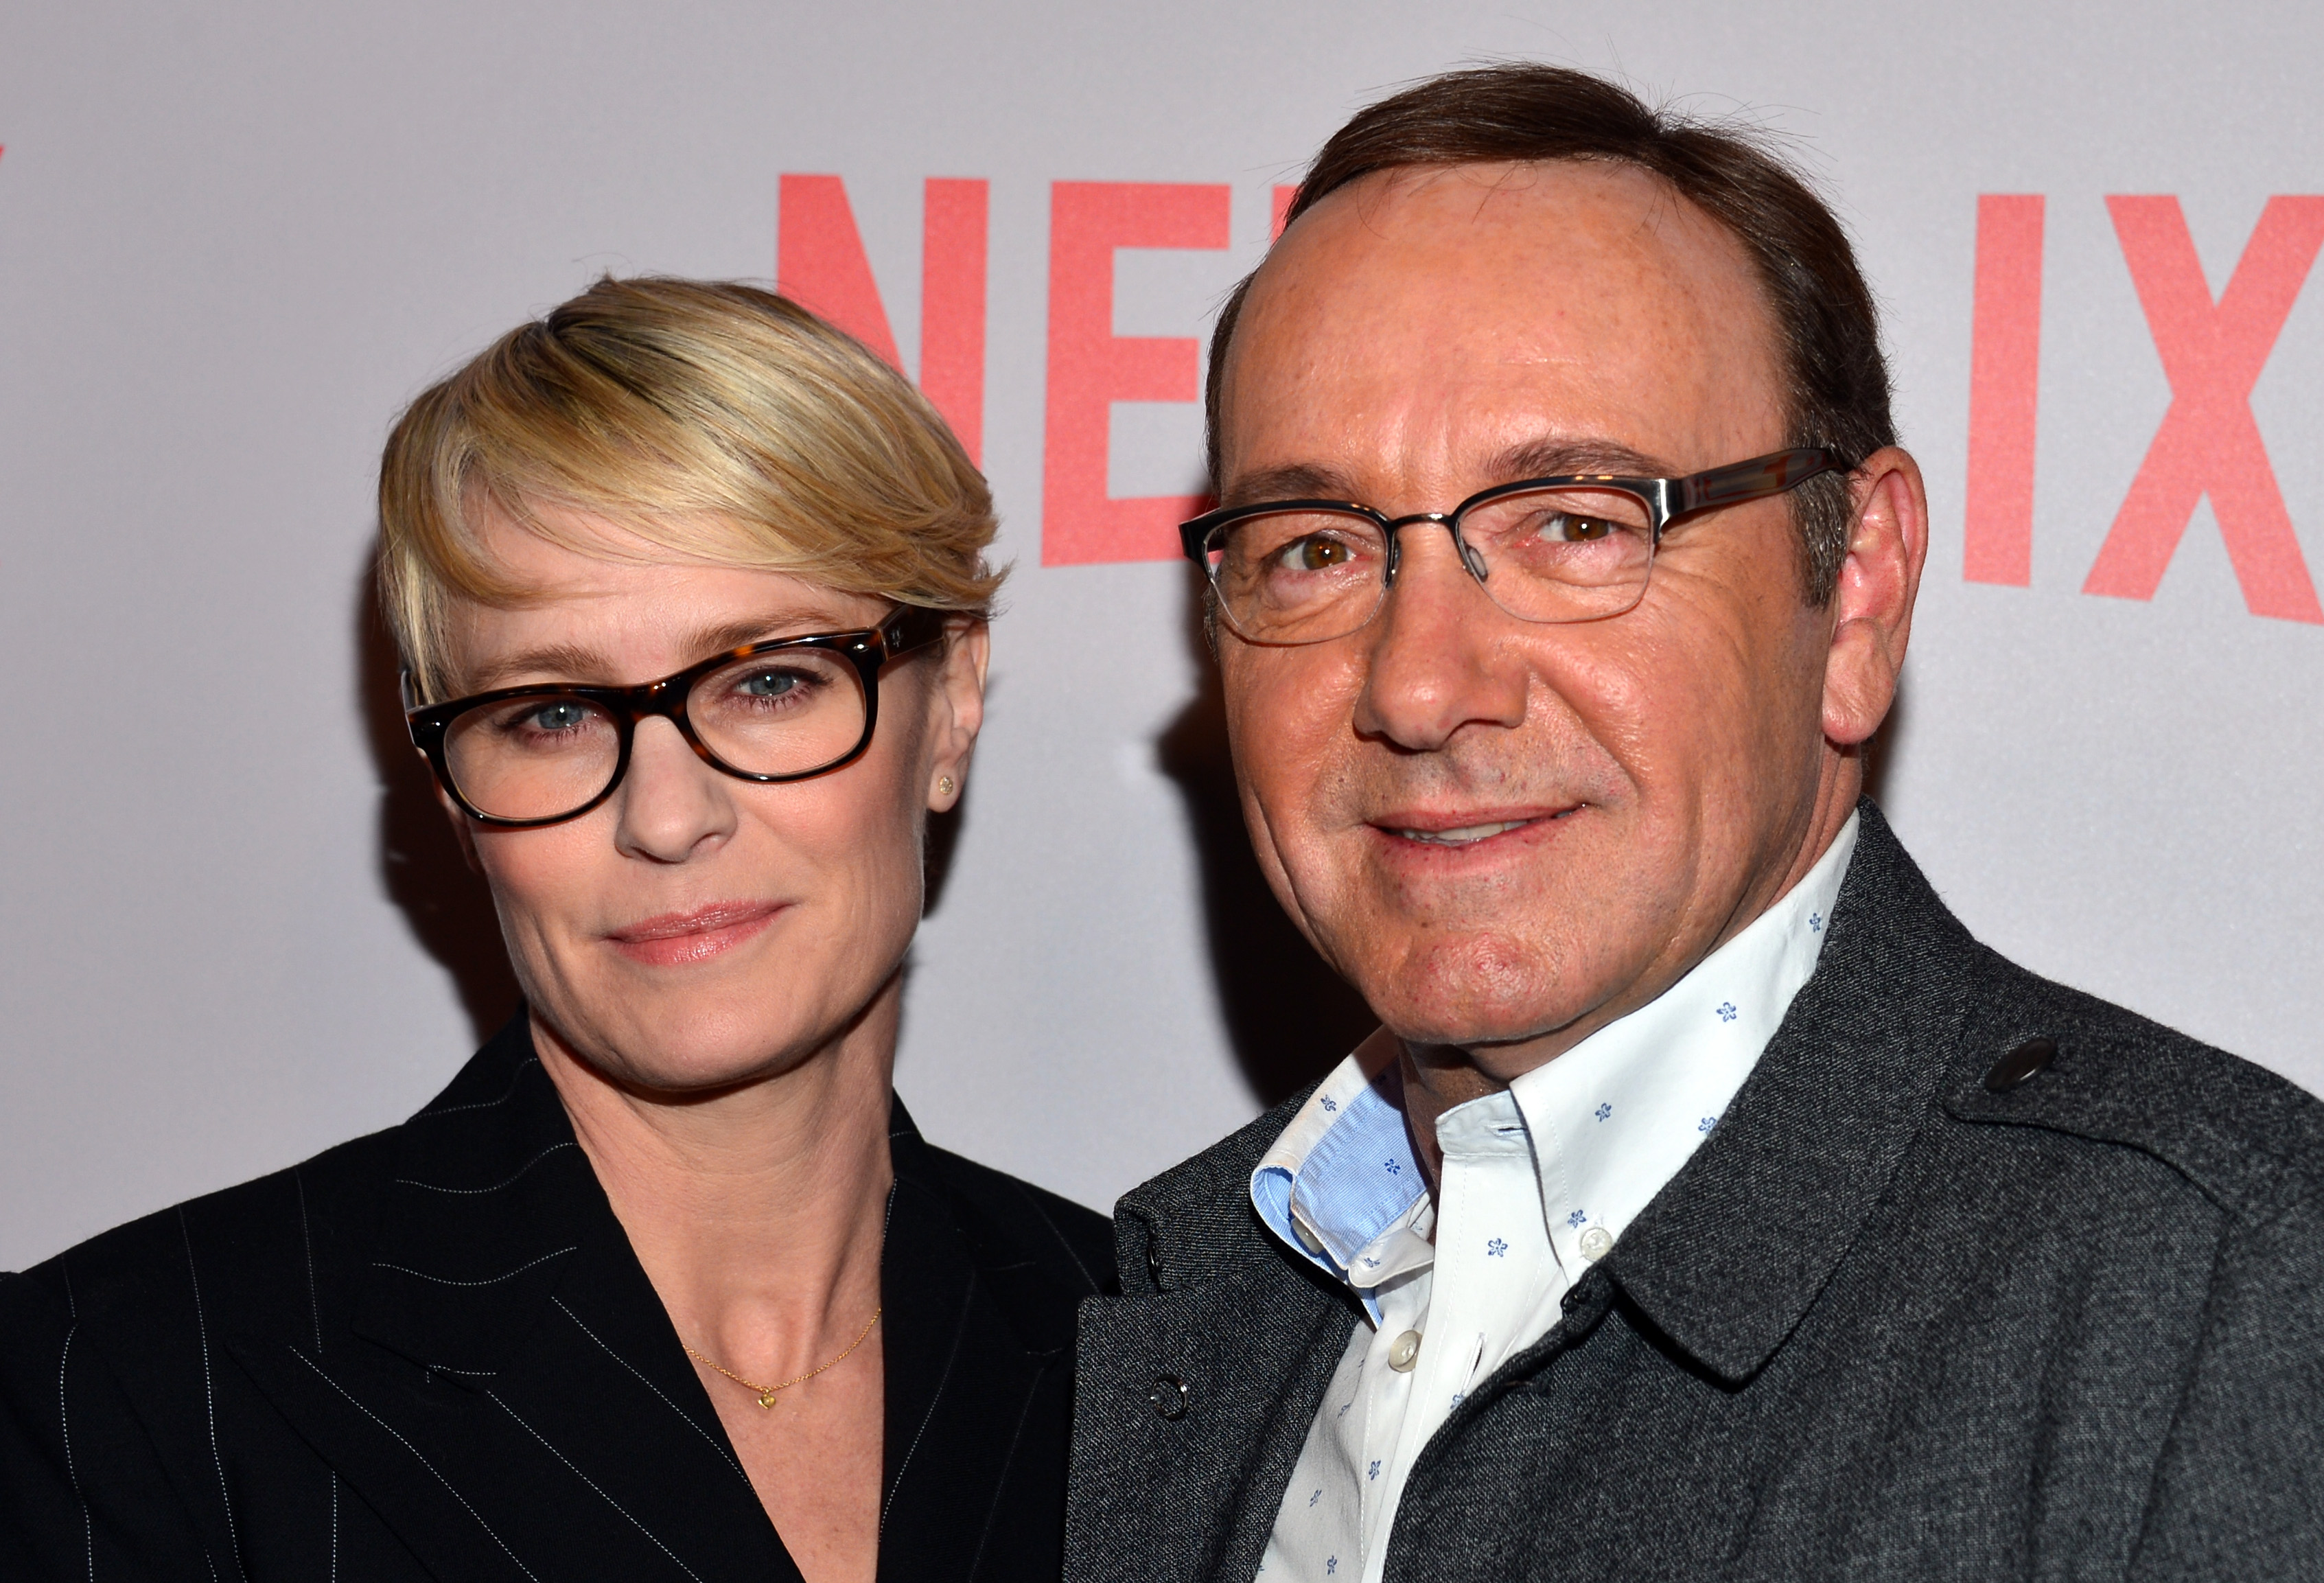 Actress Robin Wright (L) and actor Kevin Spacey attend Netflix's 'House Of Cards' Q&A screening event on April 27, 2015 in Beverly Hills, Calif.